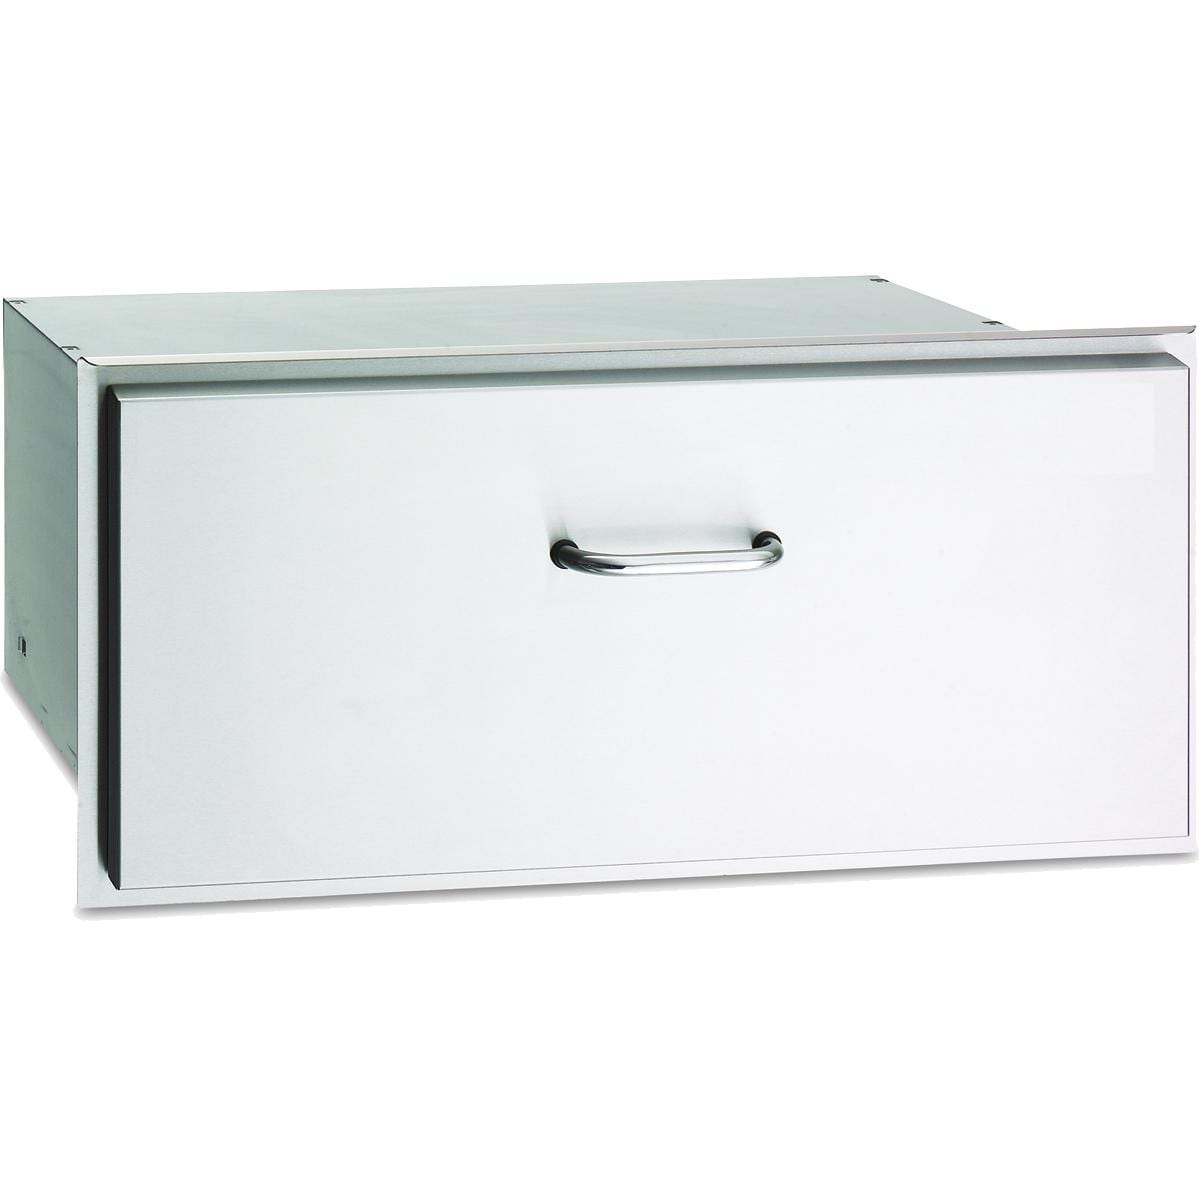 AOG 30-Inch Masonry Drawer